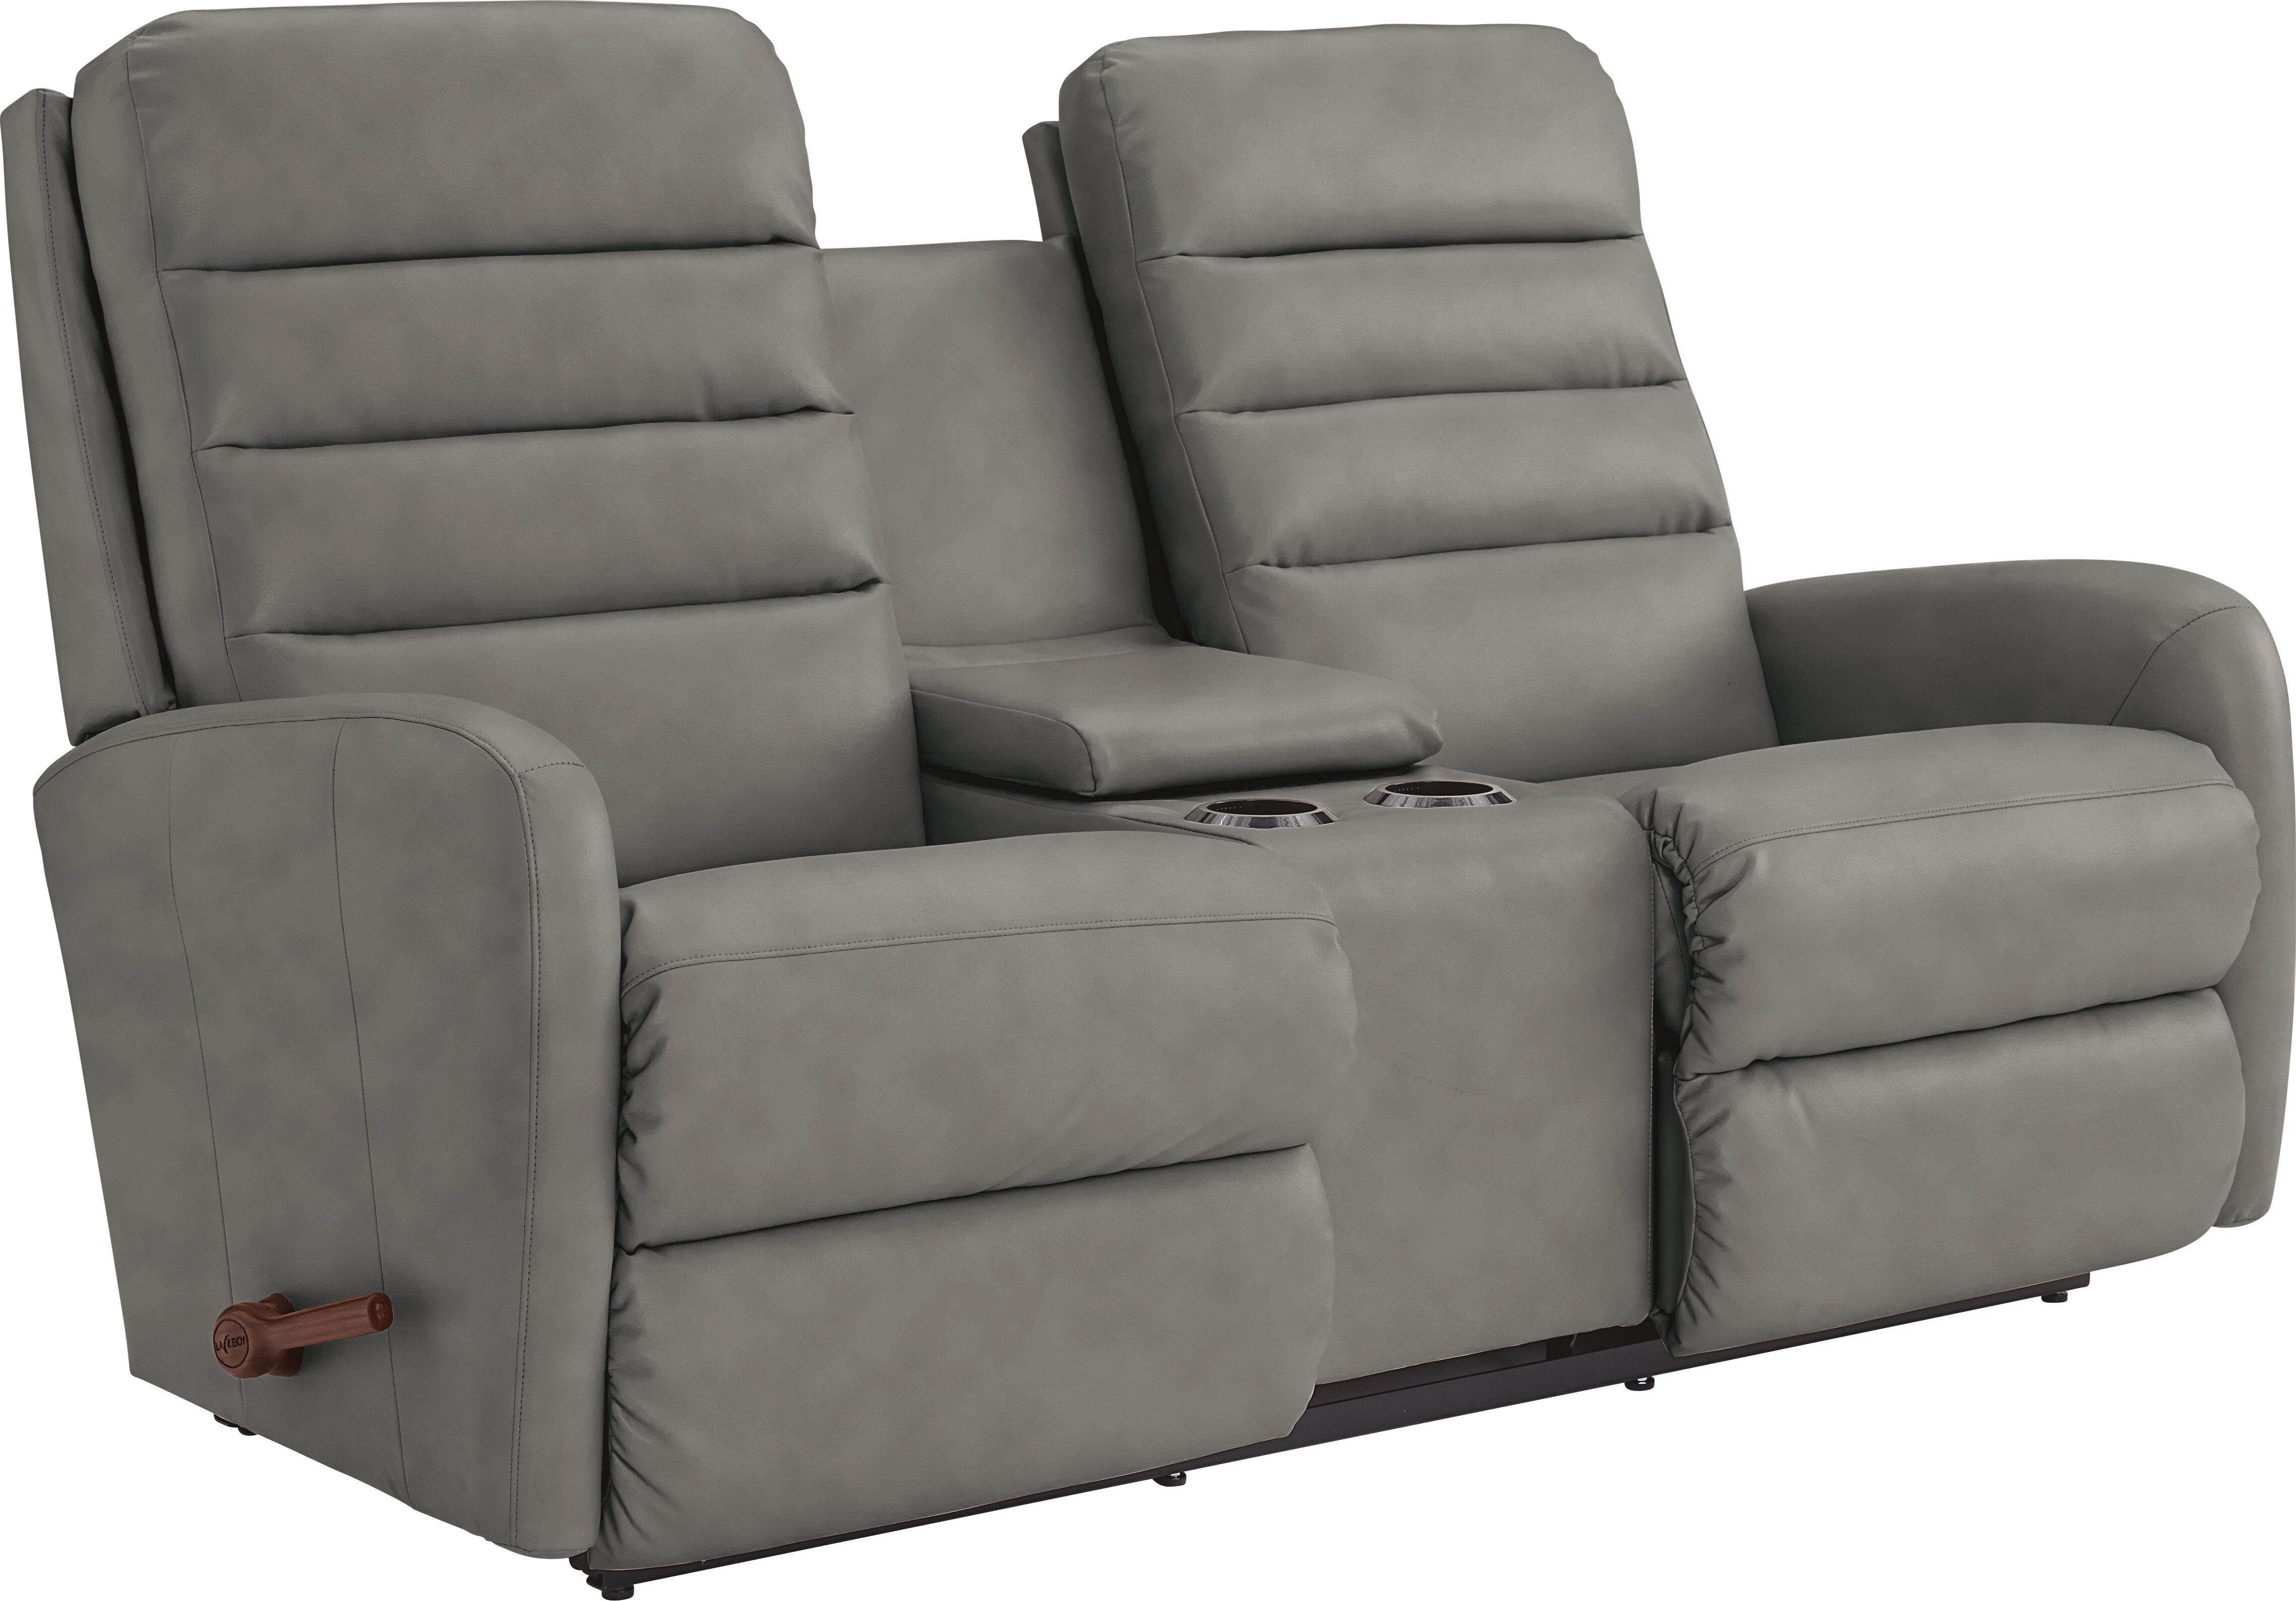 webfenwick flexsteel product furnishings power reclining loveseat frontroom fenwick